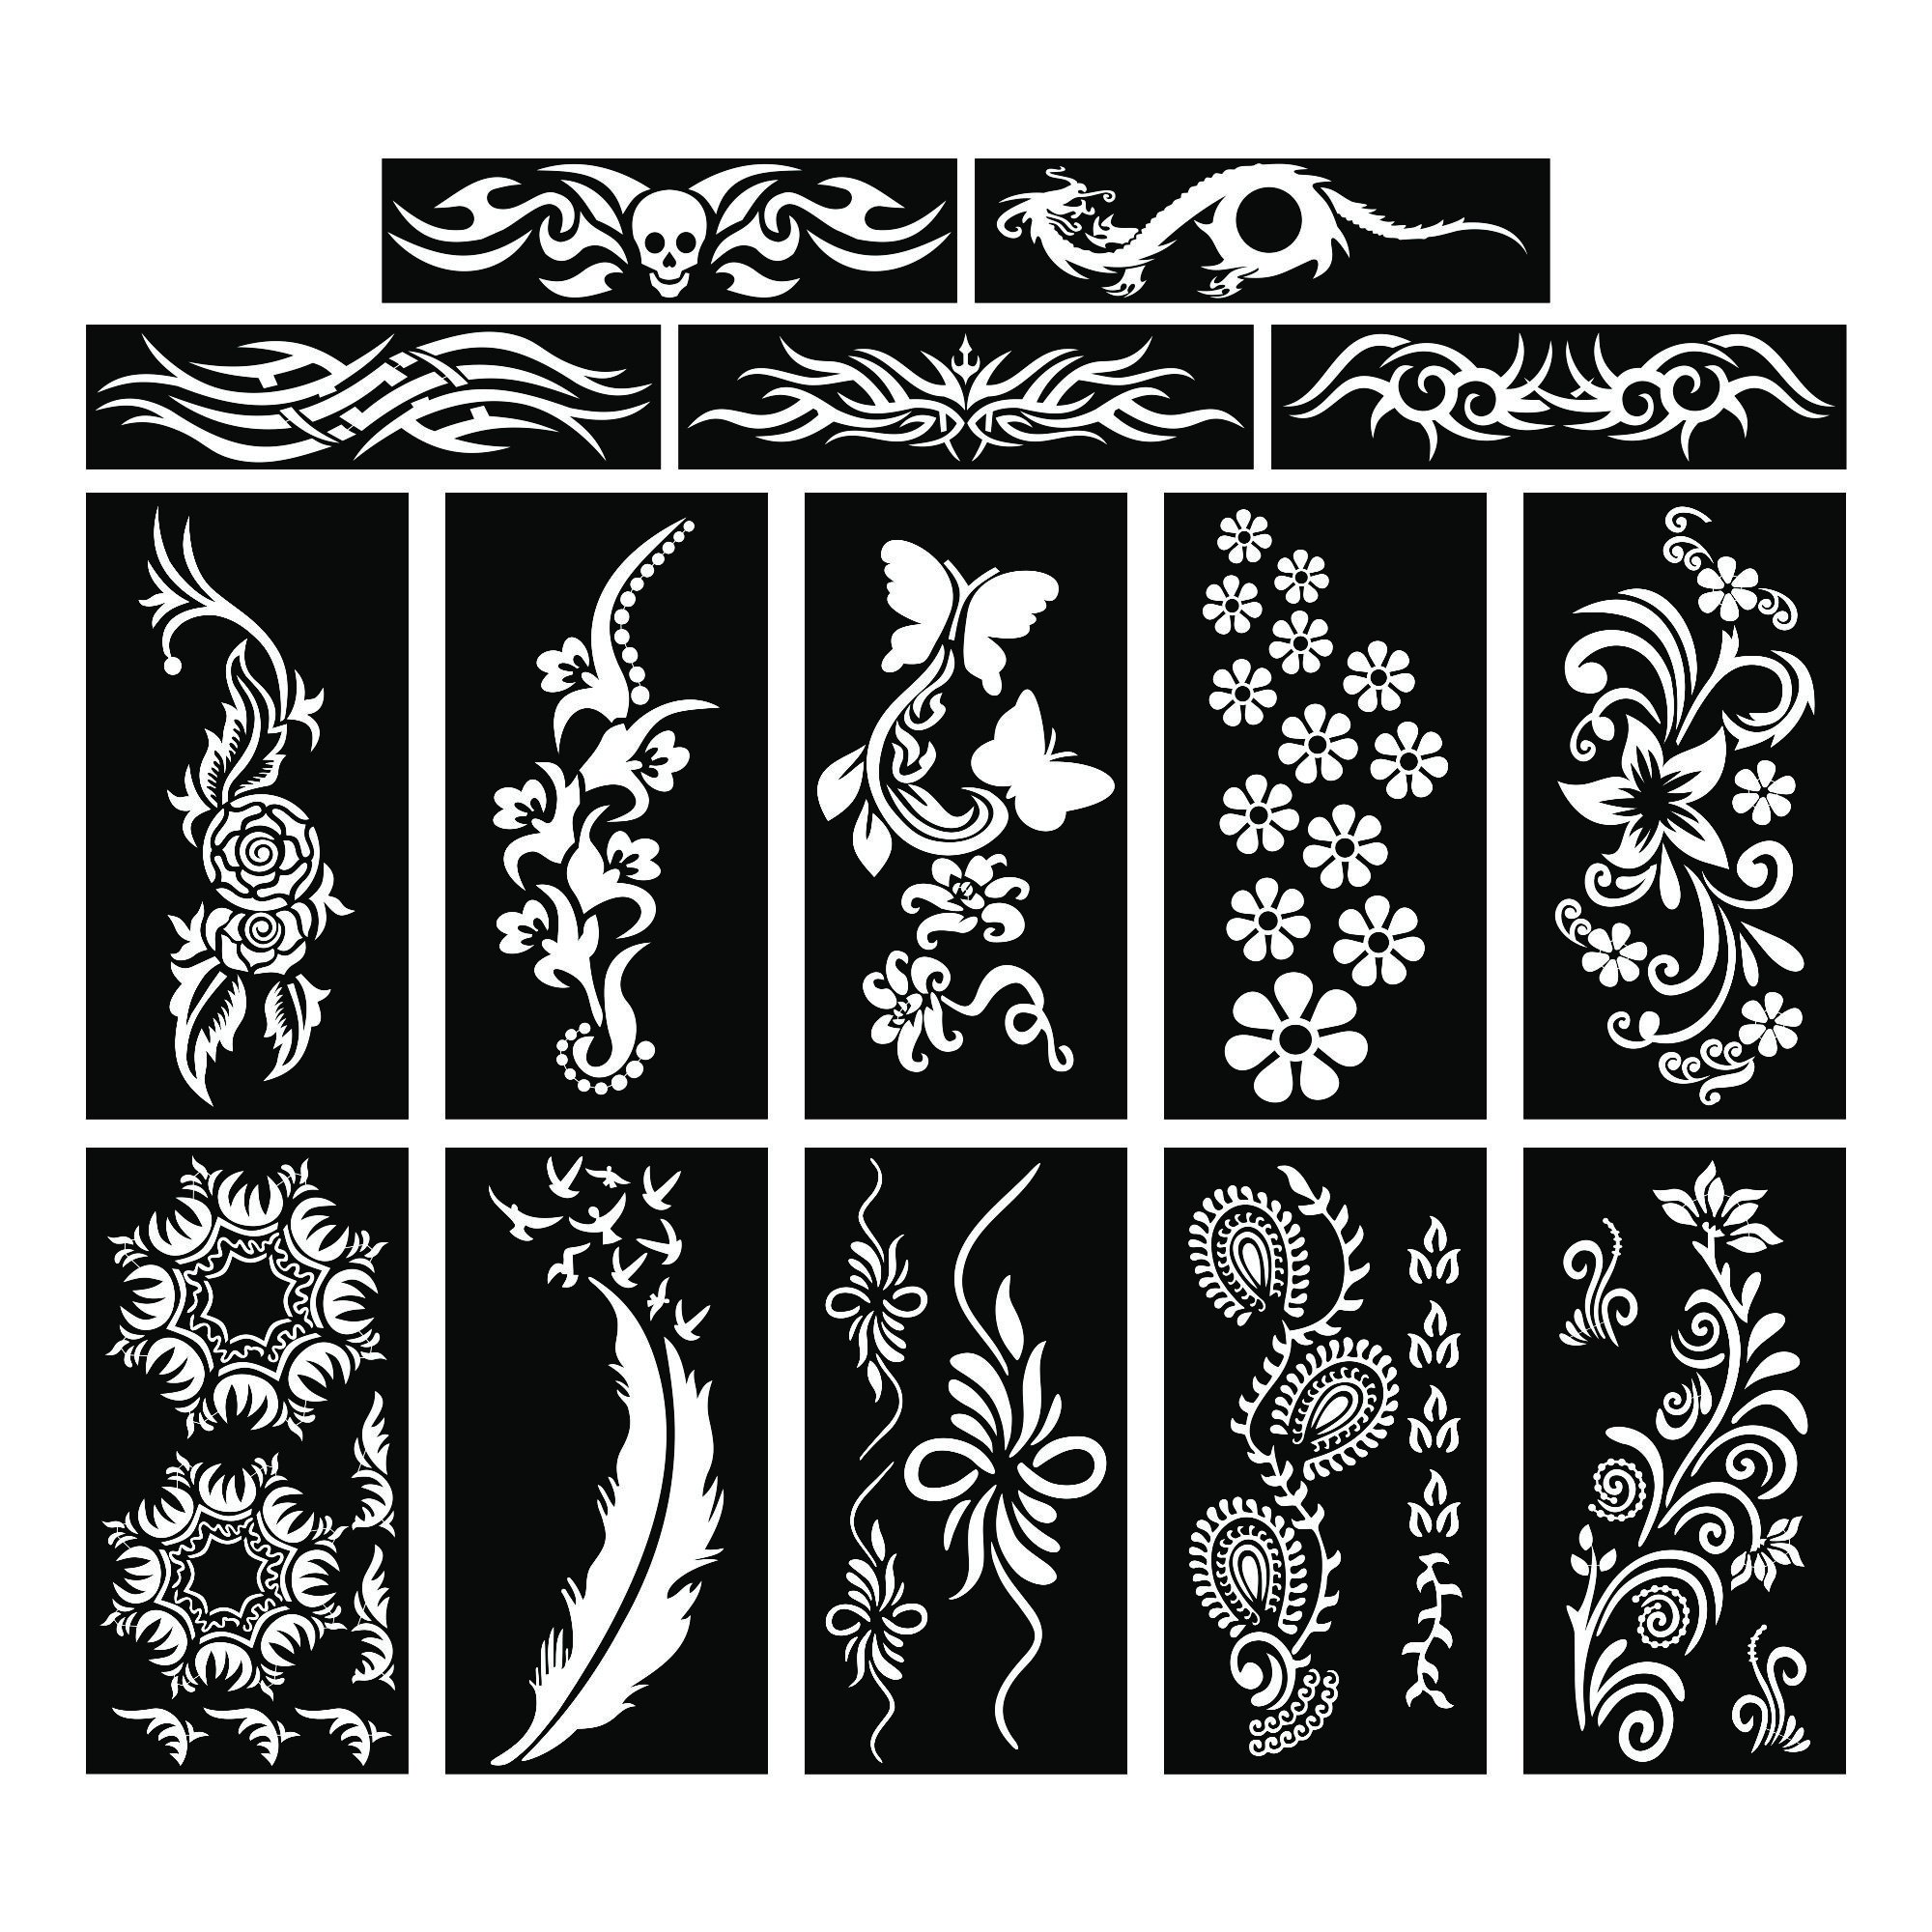 PARTH IMPEX Henna Tattoo Stencils (Pack of 15) Self Adhesive Body Paint Designs Temporary Mehndi Drawing Hand Arms Shoulders Chest Lower Back Legs Tribal Template by PARTH IMPEX